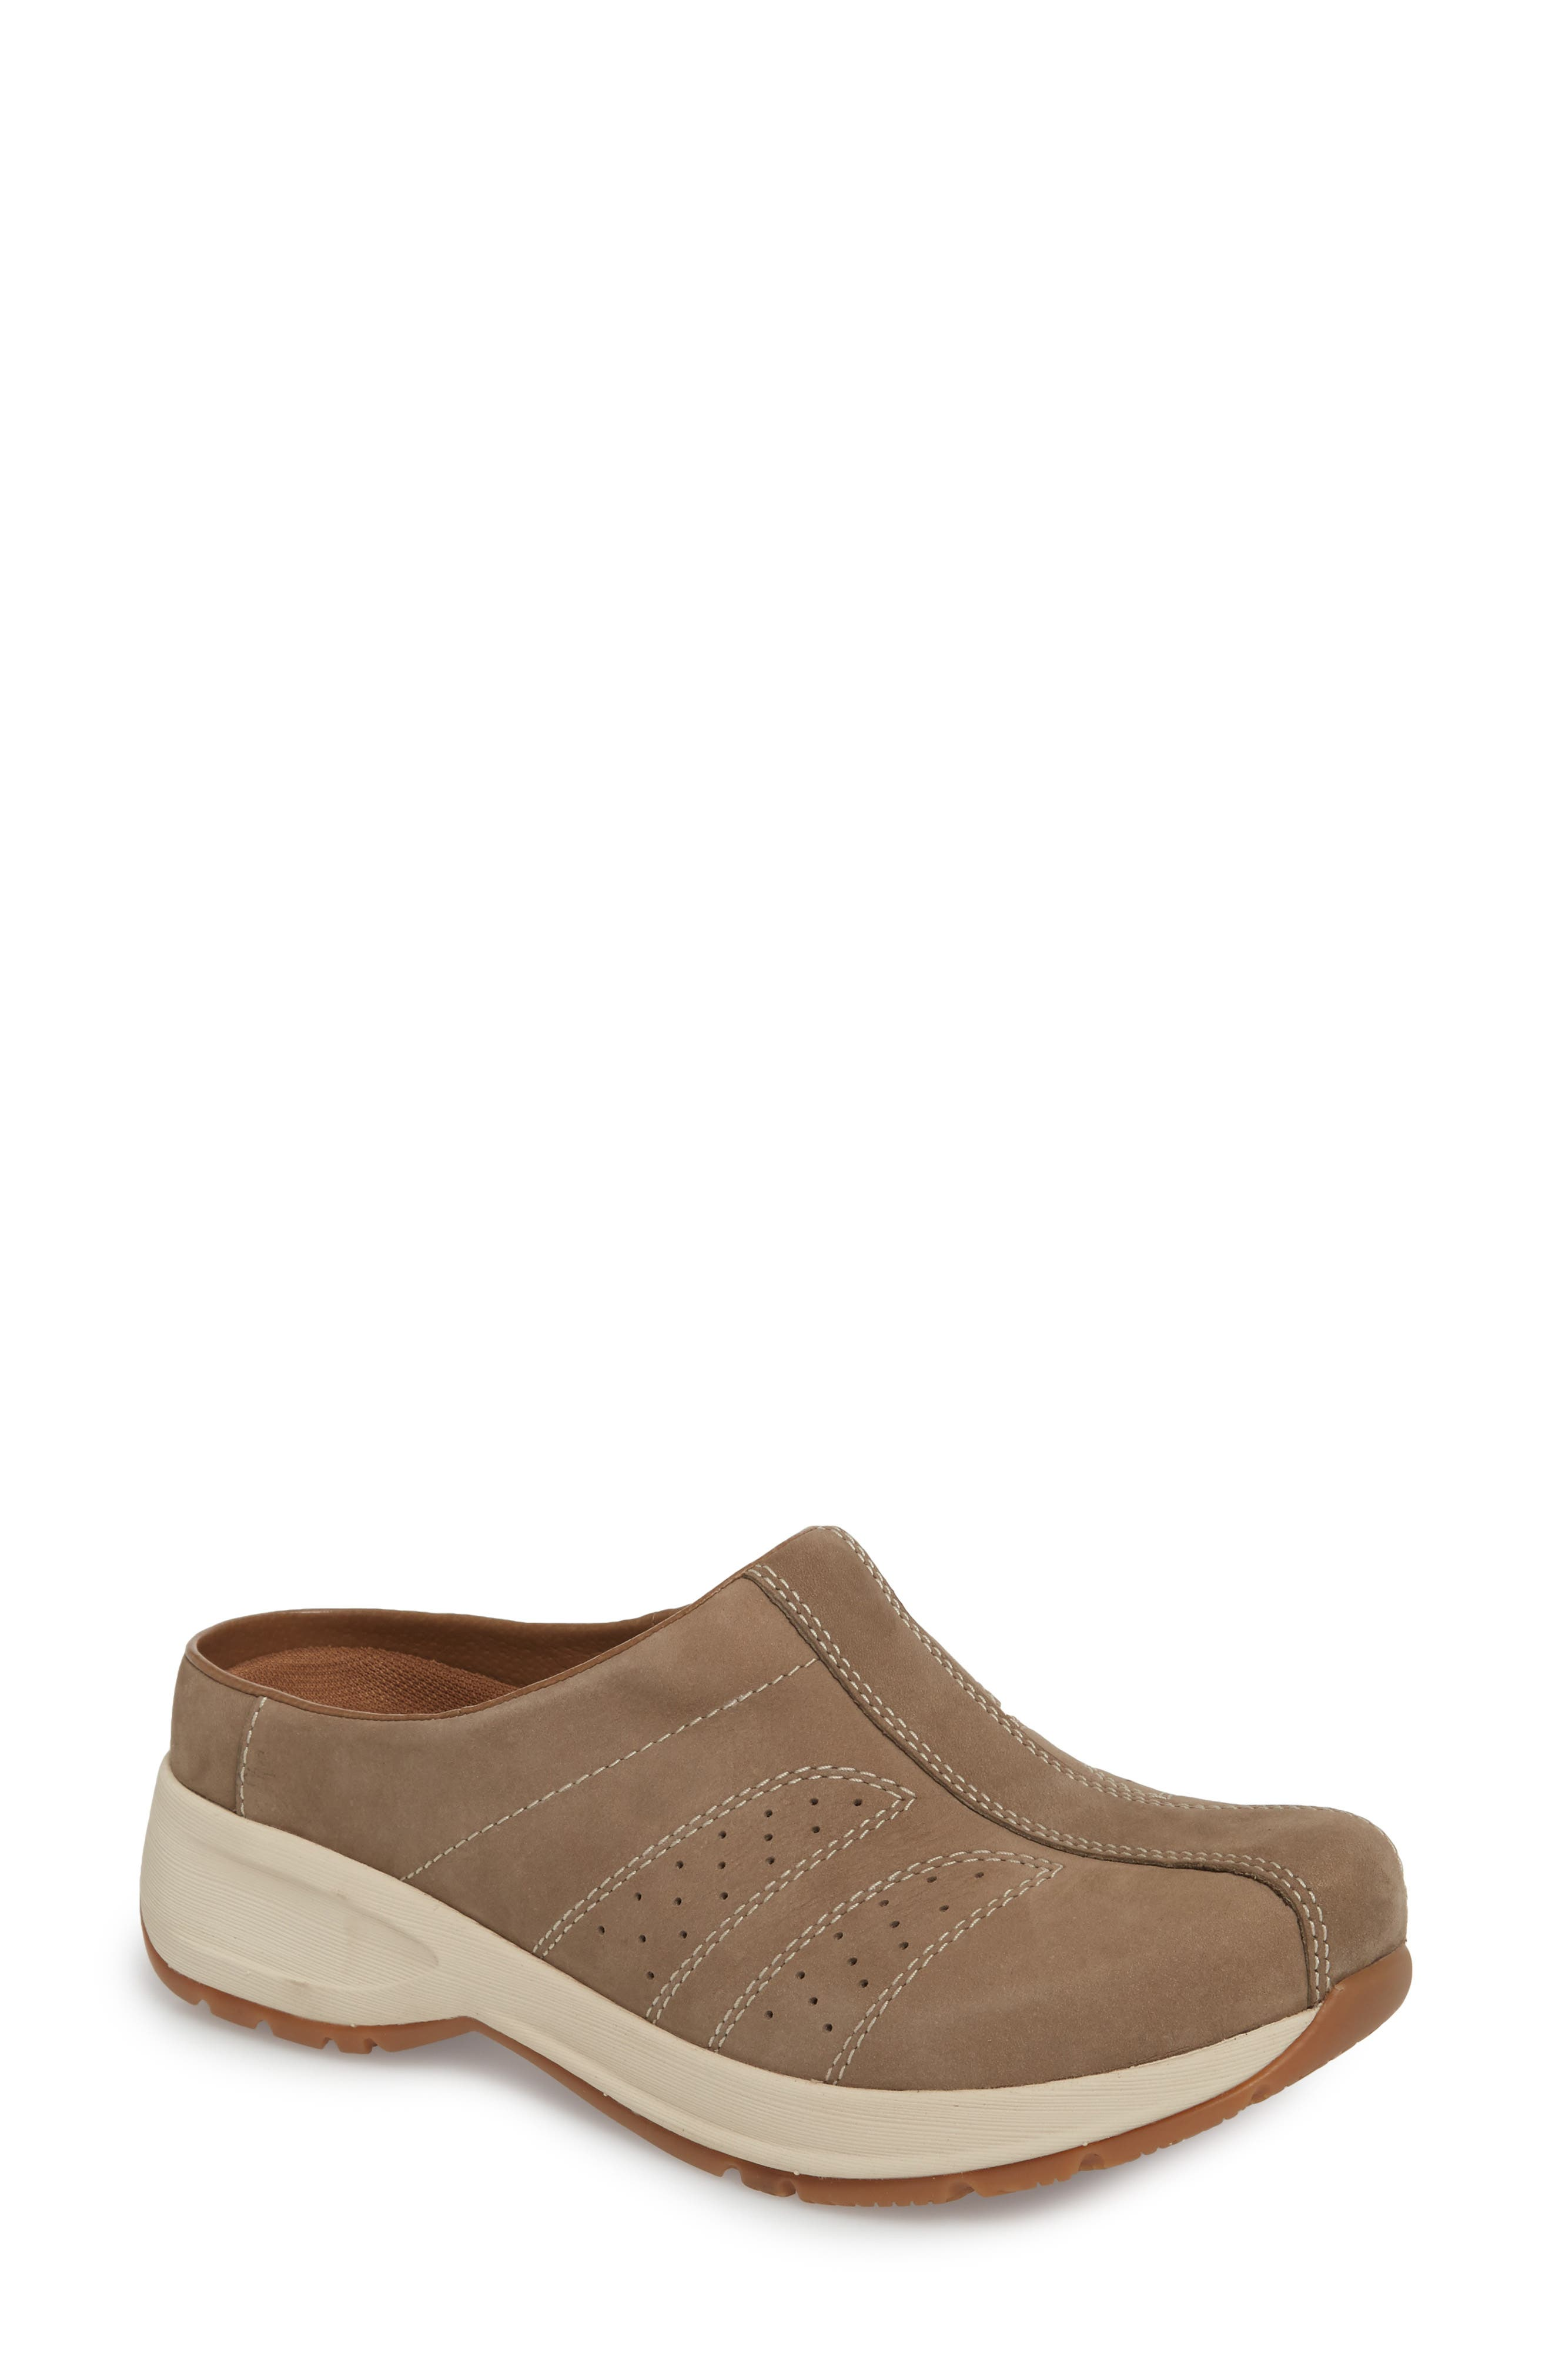 Dankso Shelly Mule,                         Main,                         color, TAUPE MILLED NUBUCK LEATHER